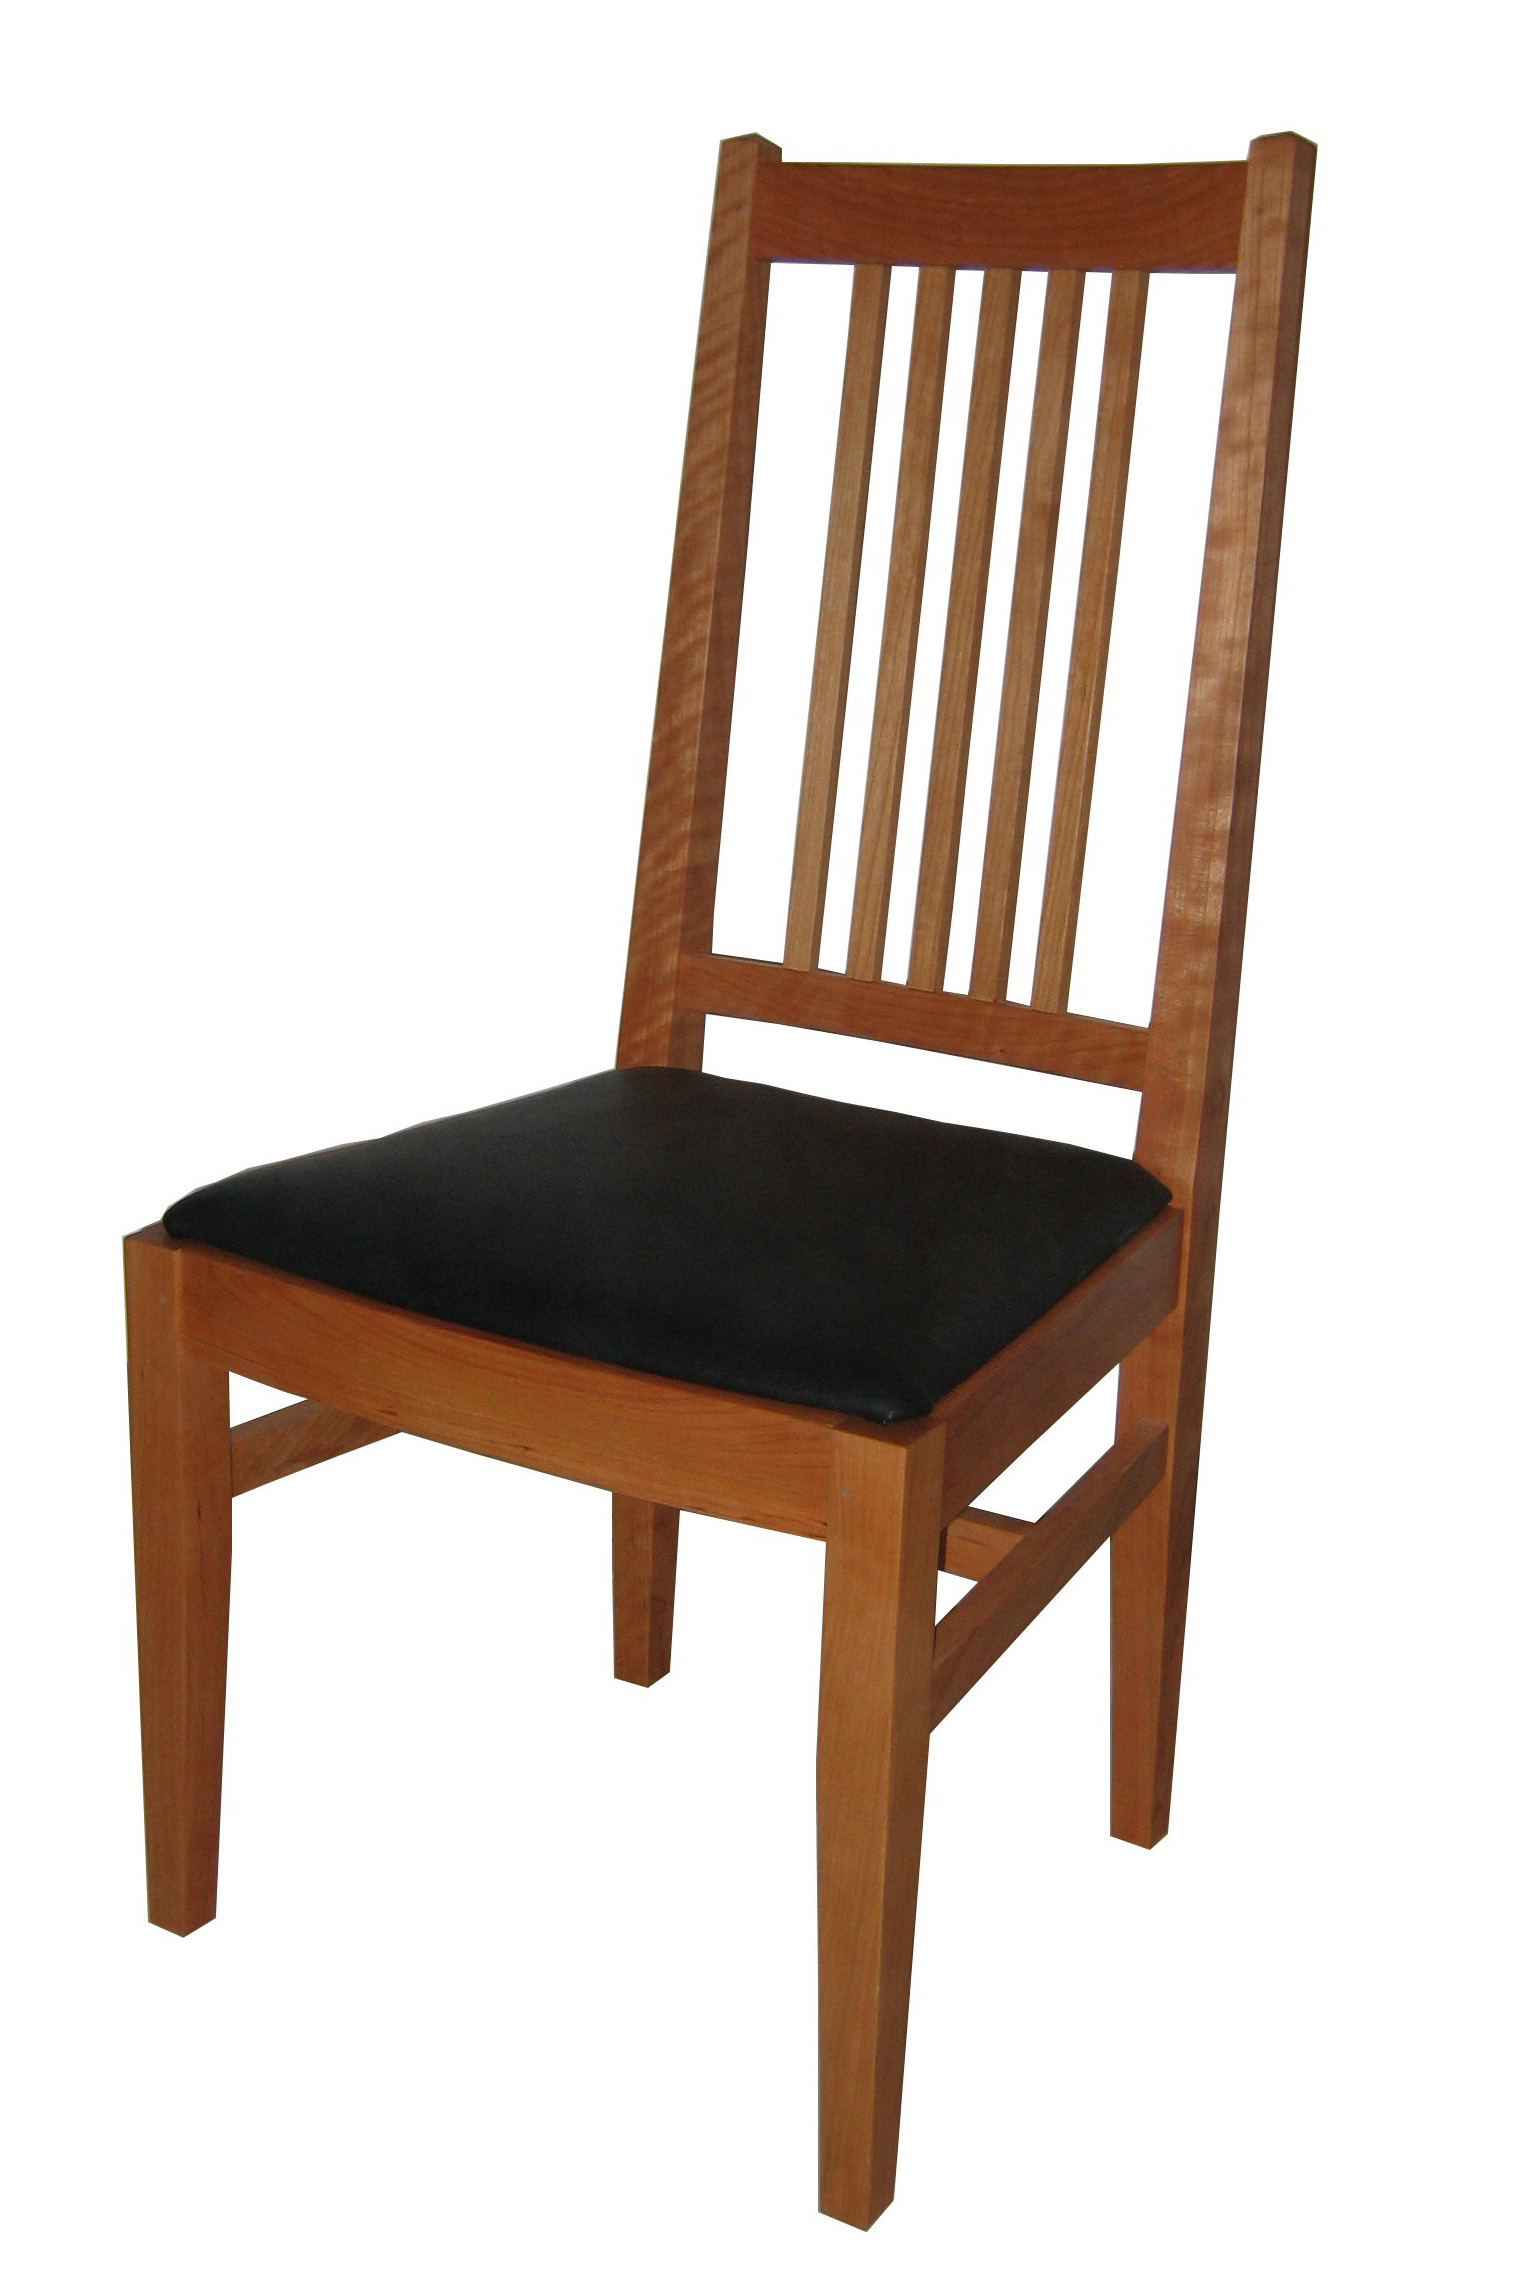 Mission Chairs A Look At Richard Bissell 39s Shaker And Mission Furniture